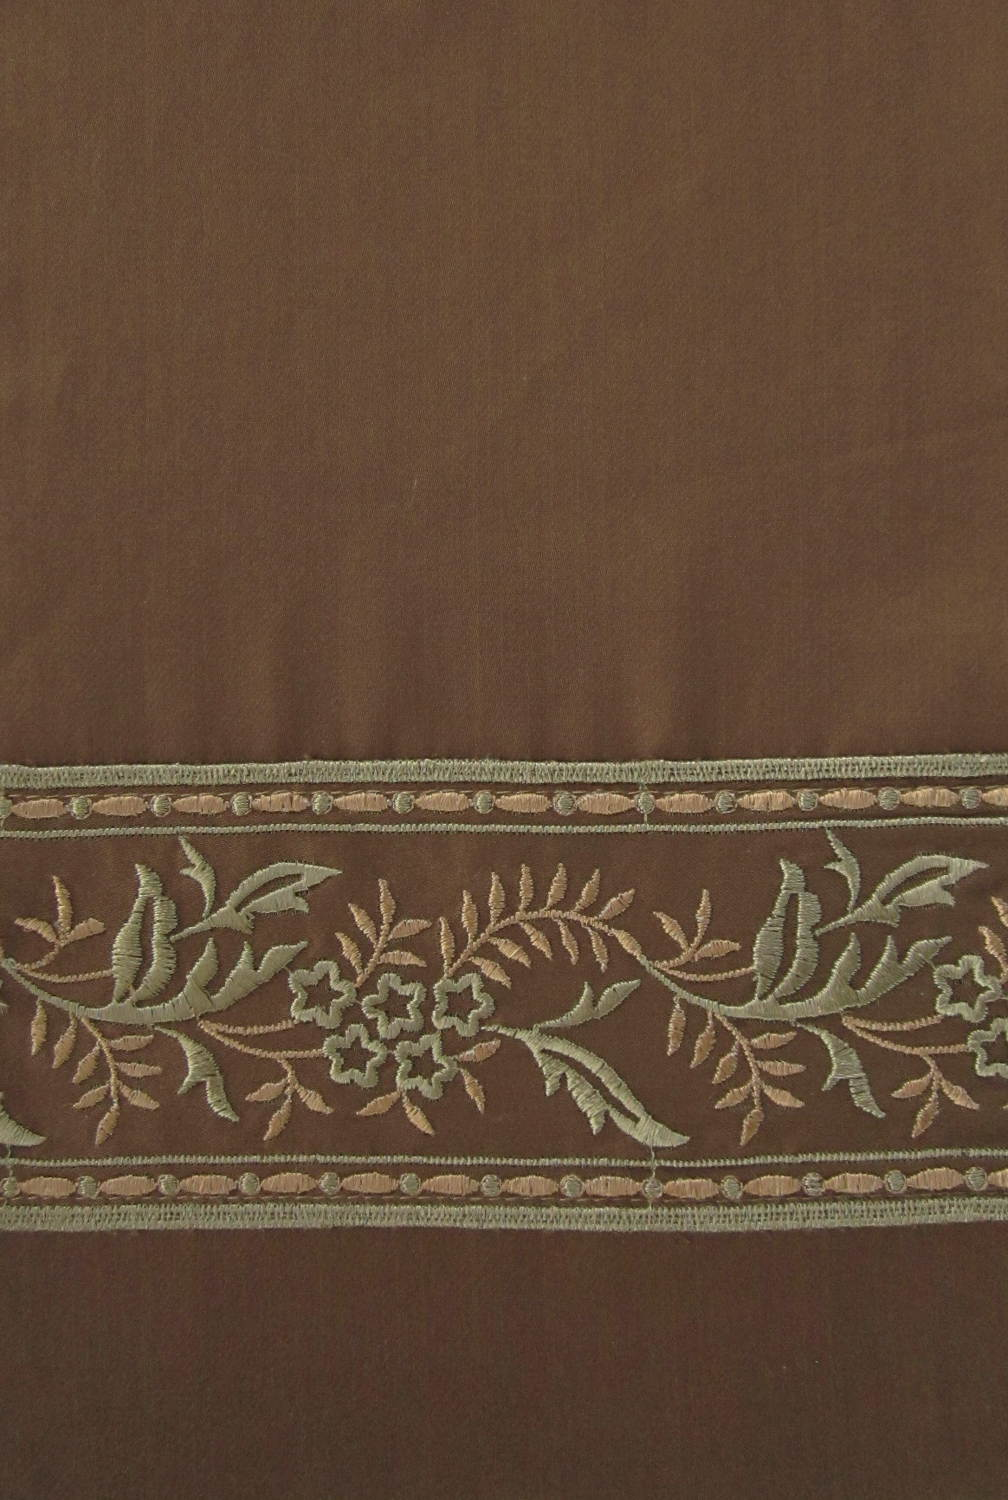 Home Treasures Bedding Isfahan Floral Embroidery Bedding